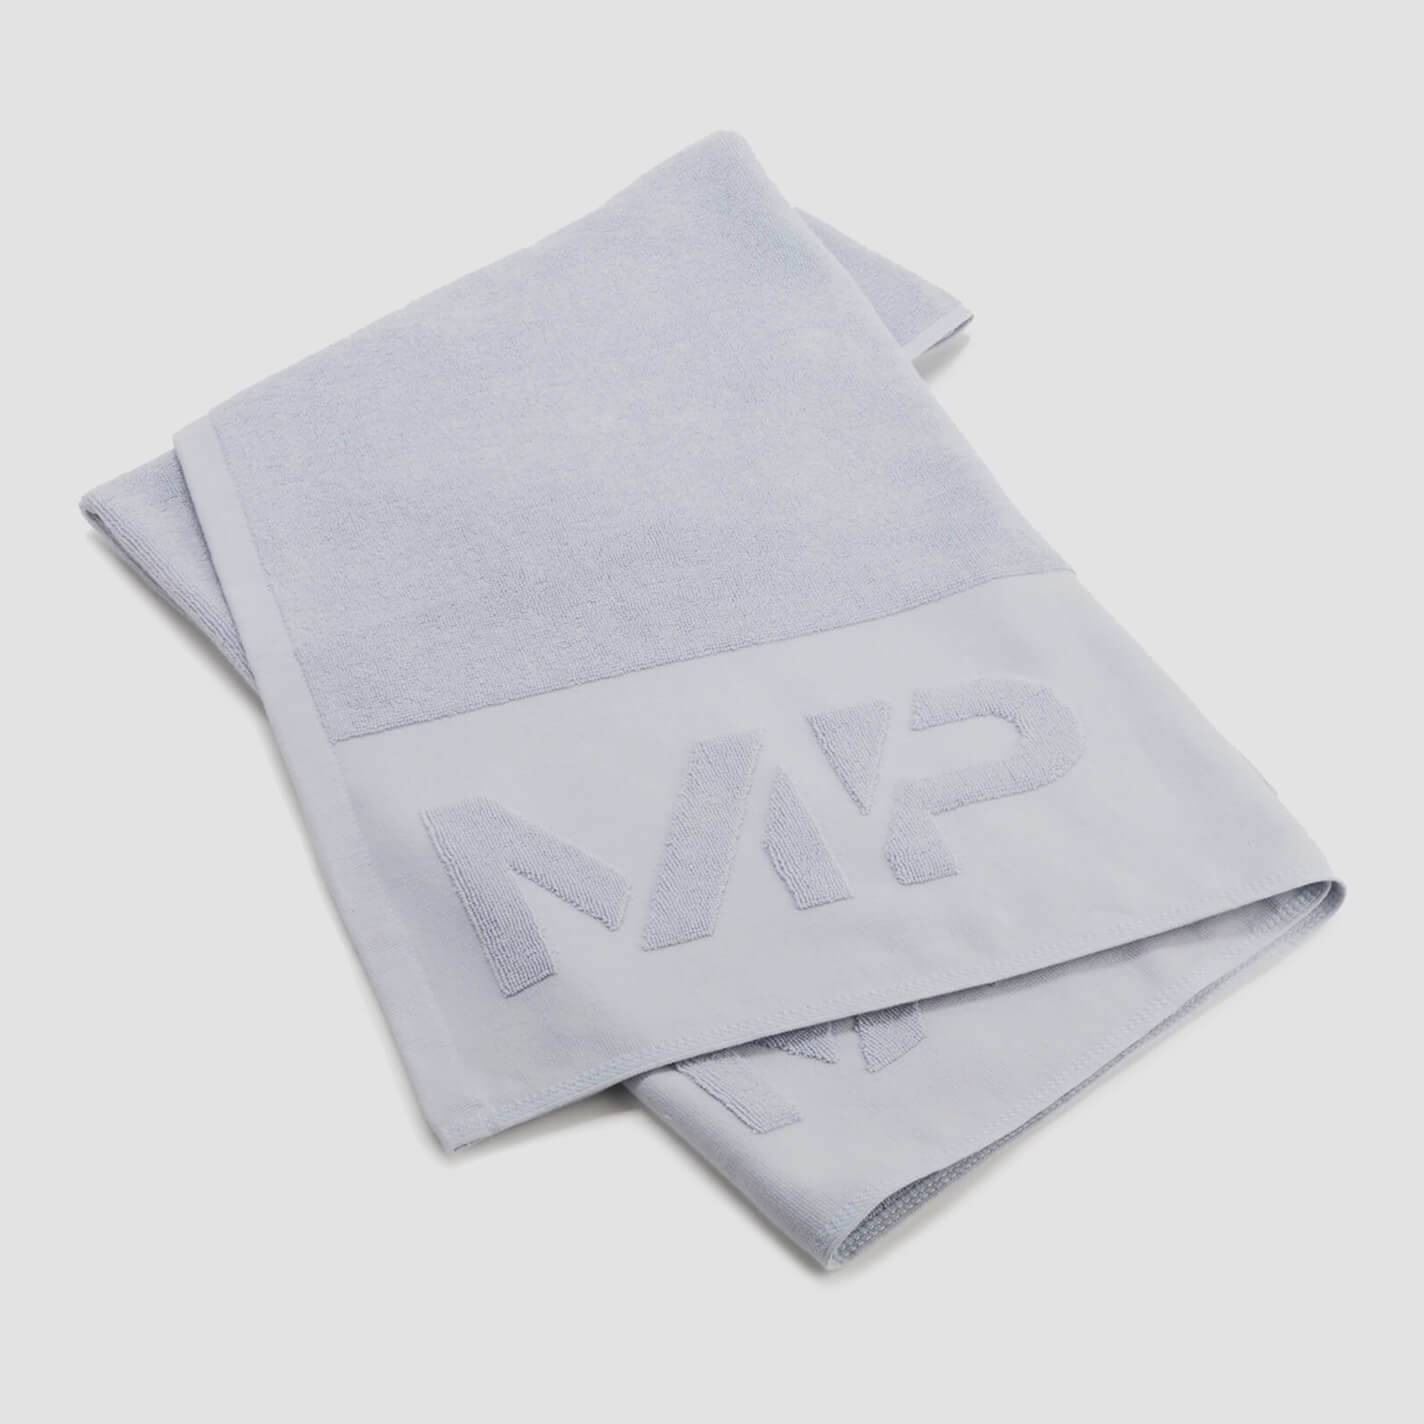 Myprotein Large Towel - Grey